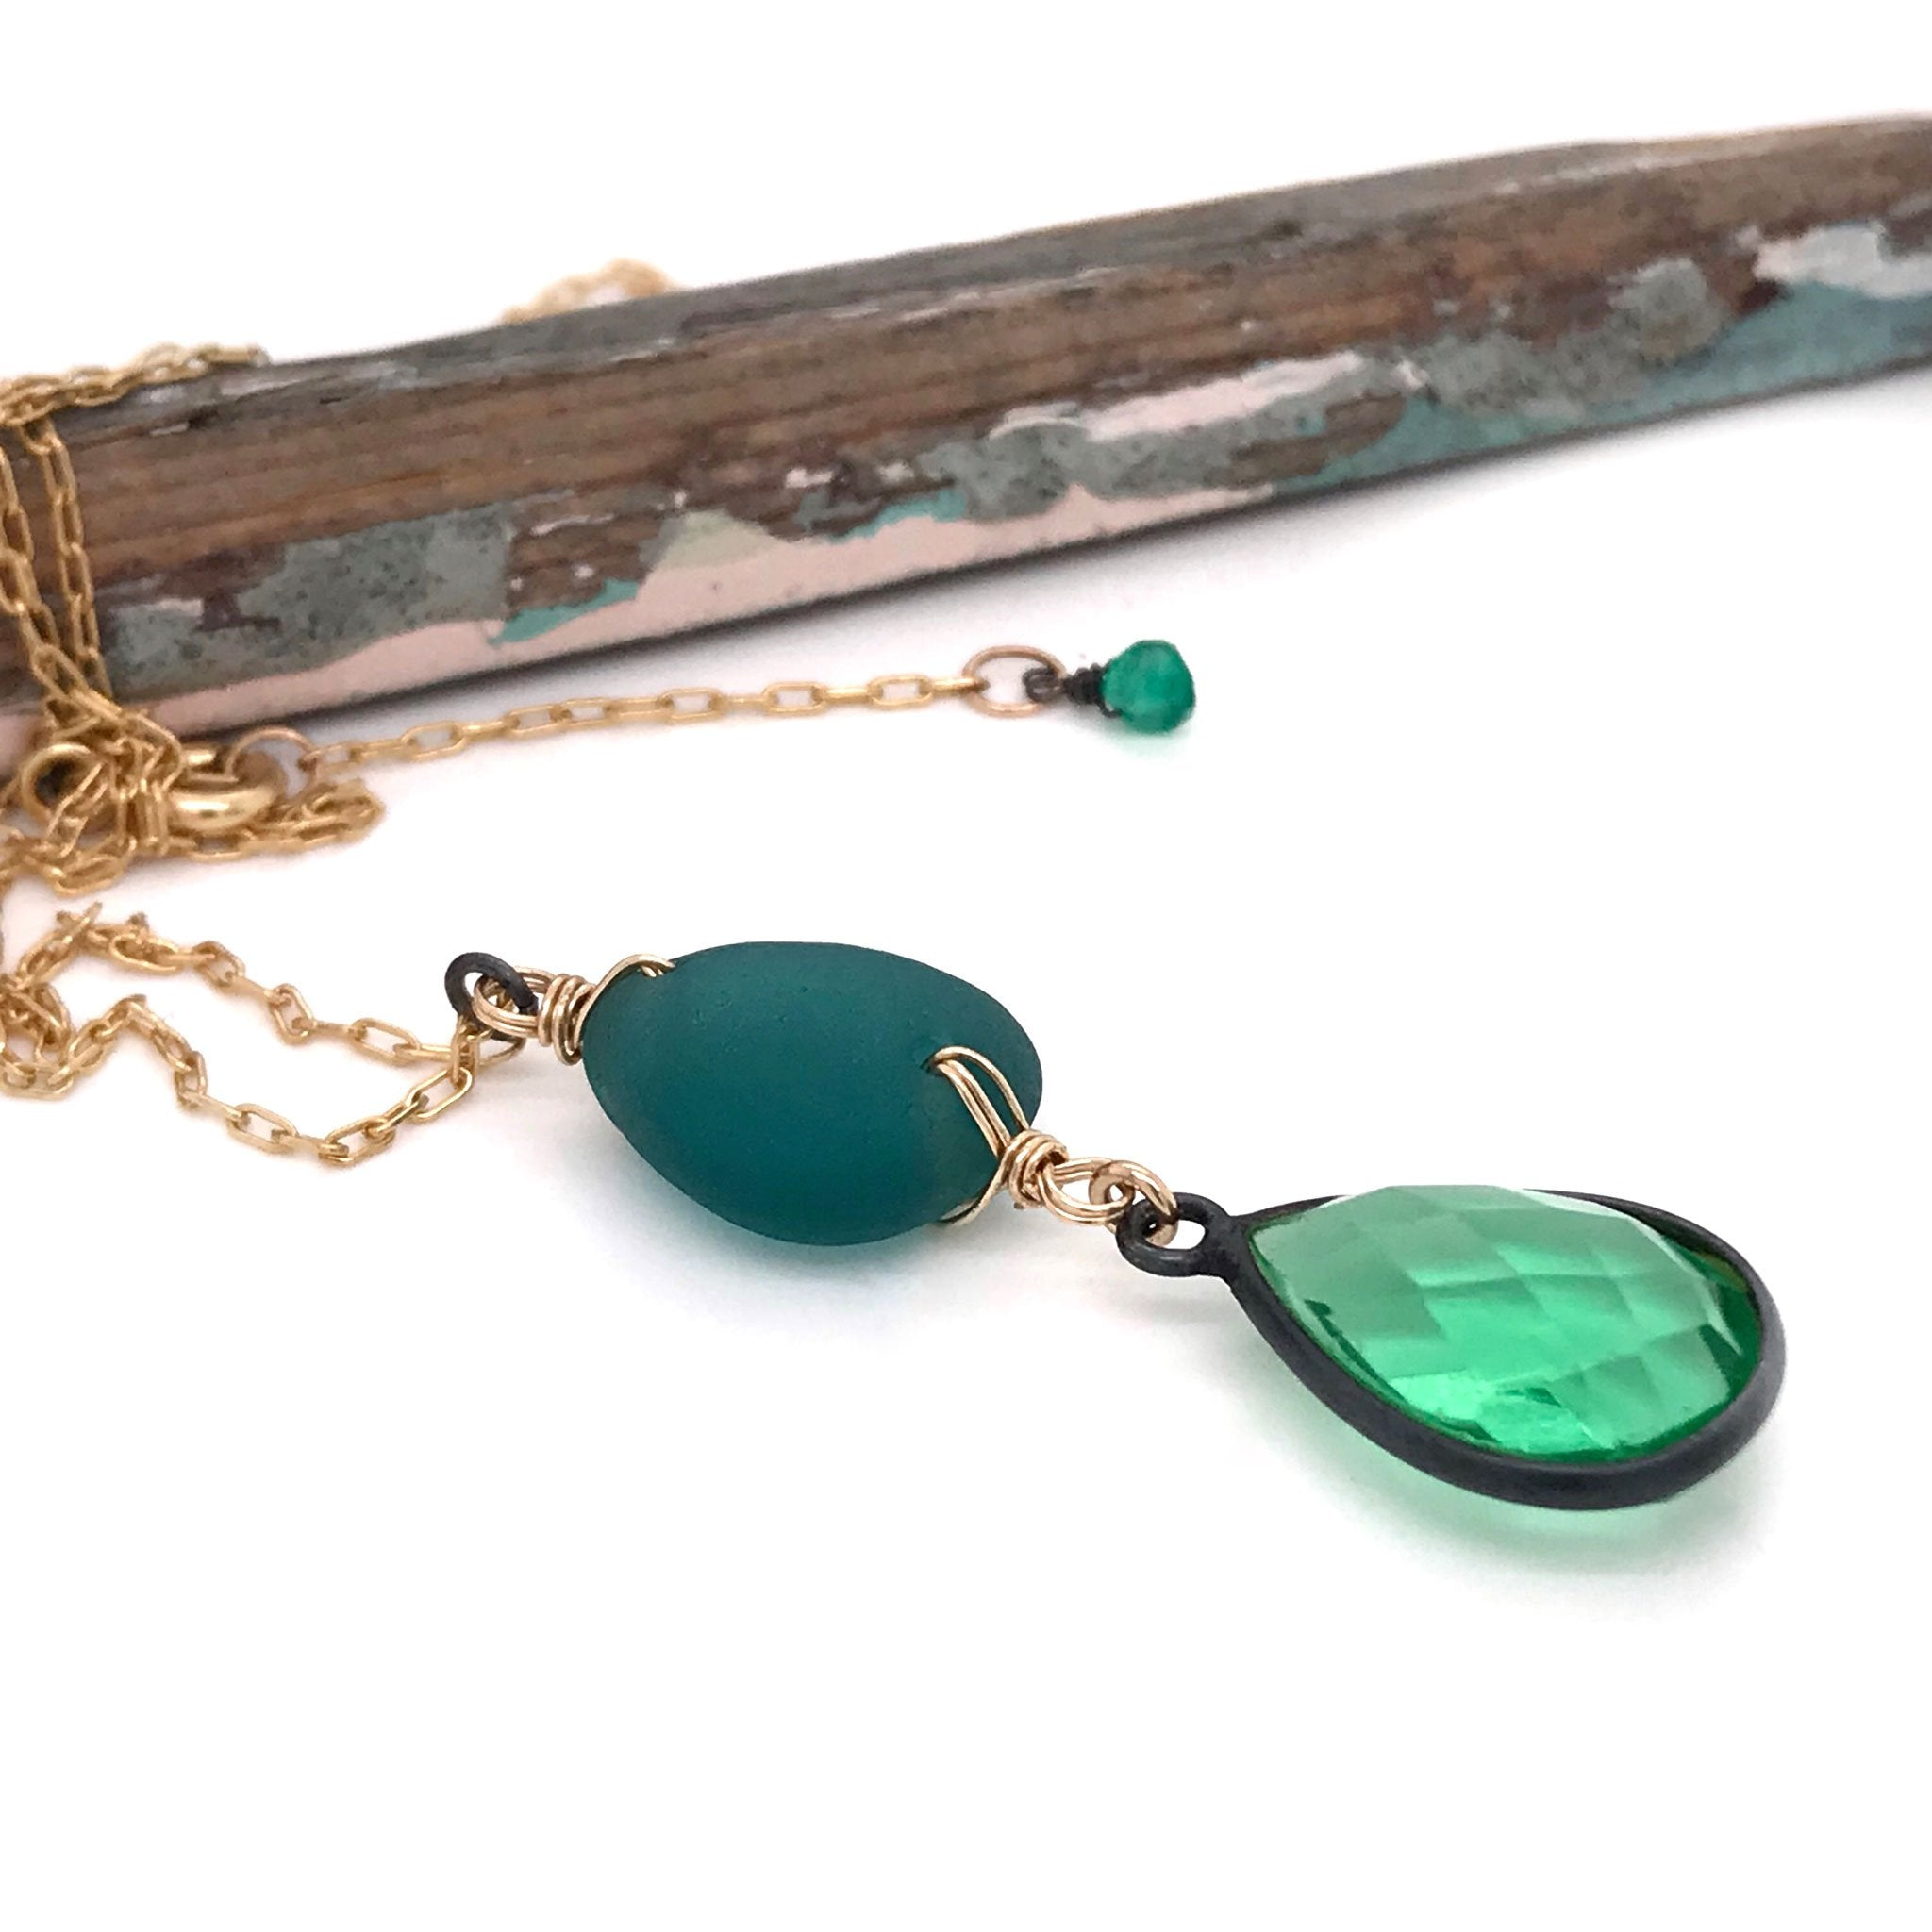 gold necklace with teal seaglass and green quartz kriket Broadhurst jewellery